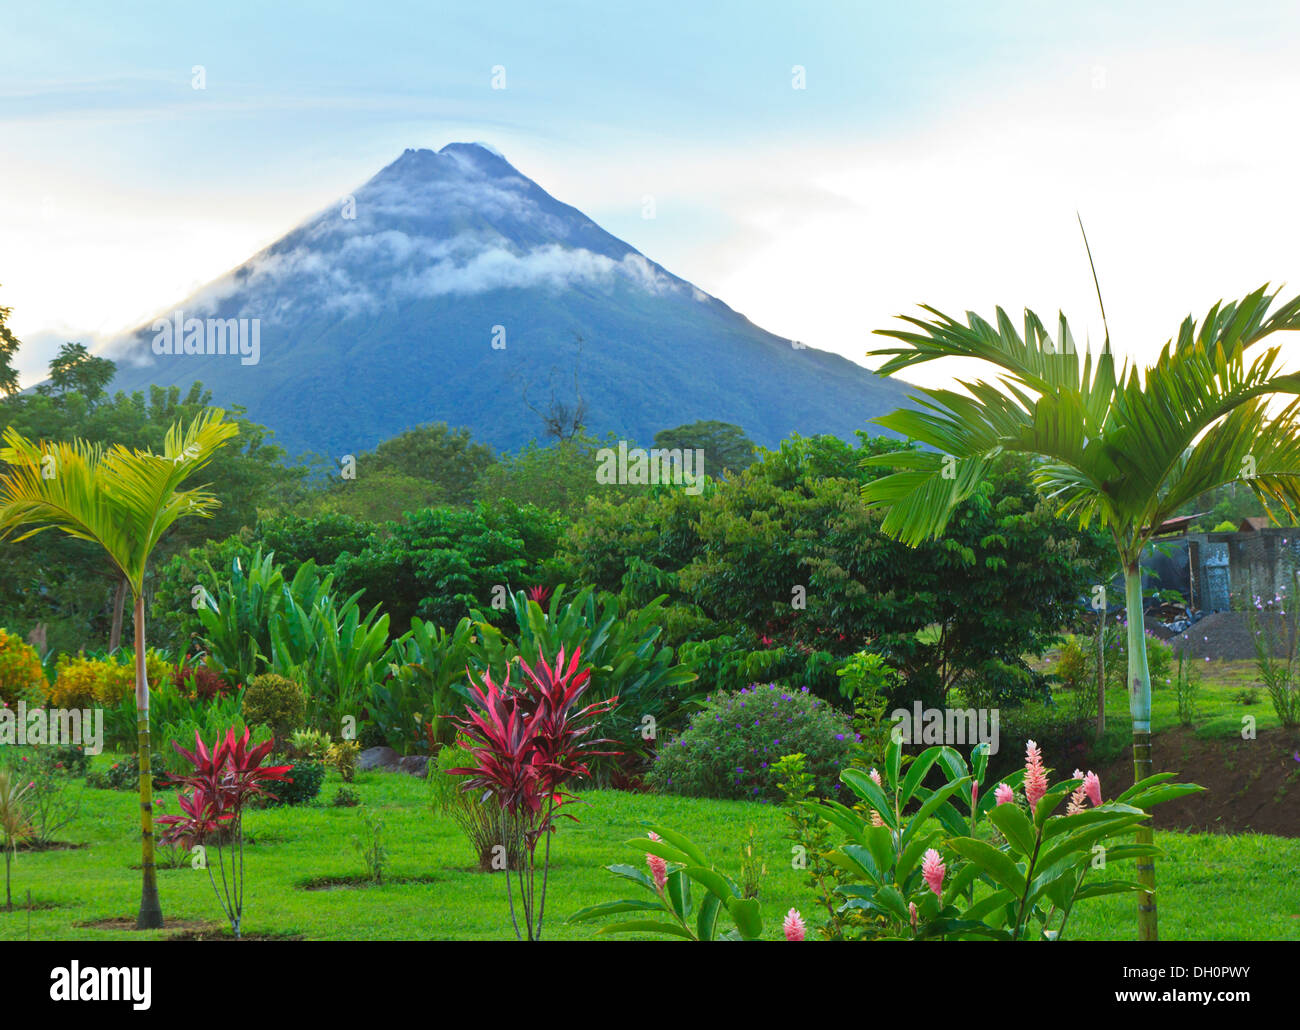 A lush garden in La Fortuna, Costa Rica with Arenal Volcano in the background - Stock Image